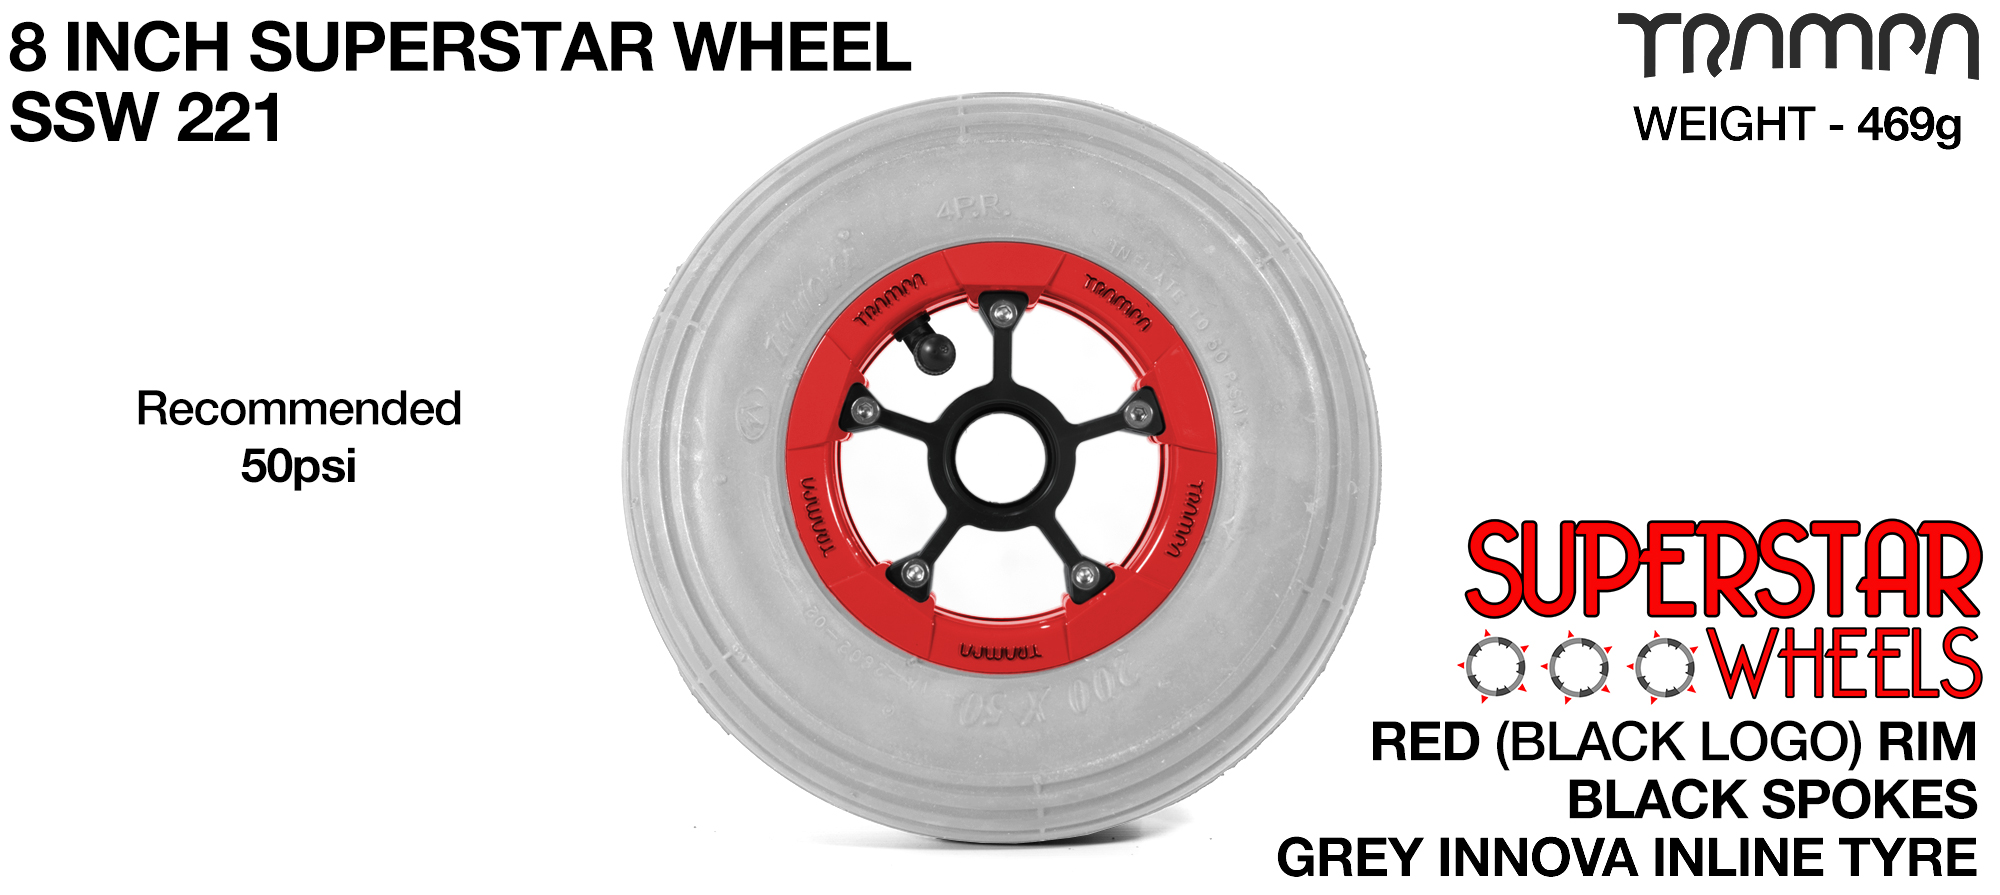 8 Inch Wheel - Red Superstar Rim Black Anodised Spokes & Grey 8 Inch Inline Tyre